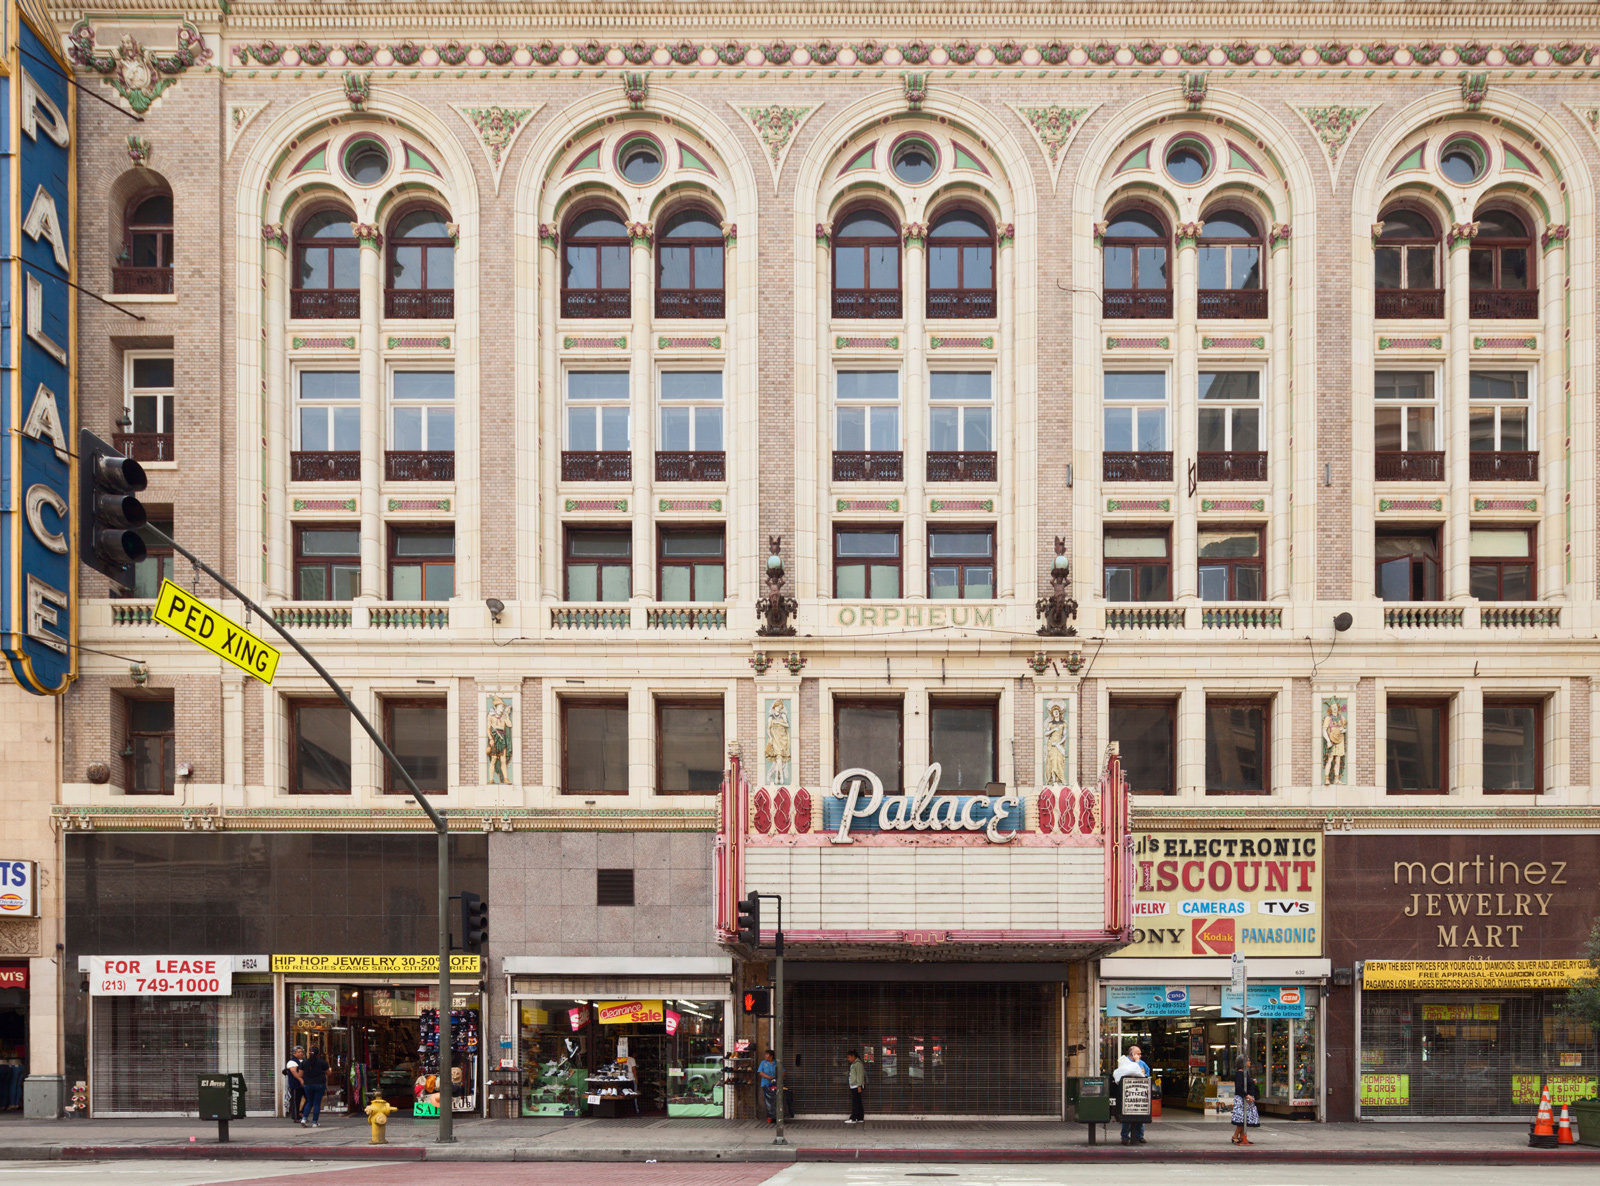 TV Show Destination - The Palace Theater from Scanda